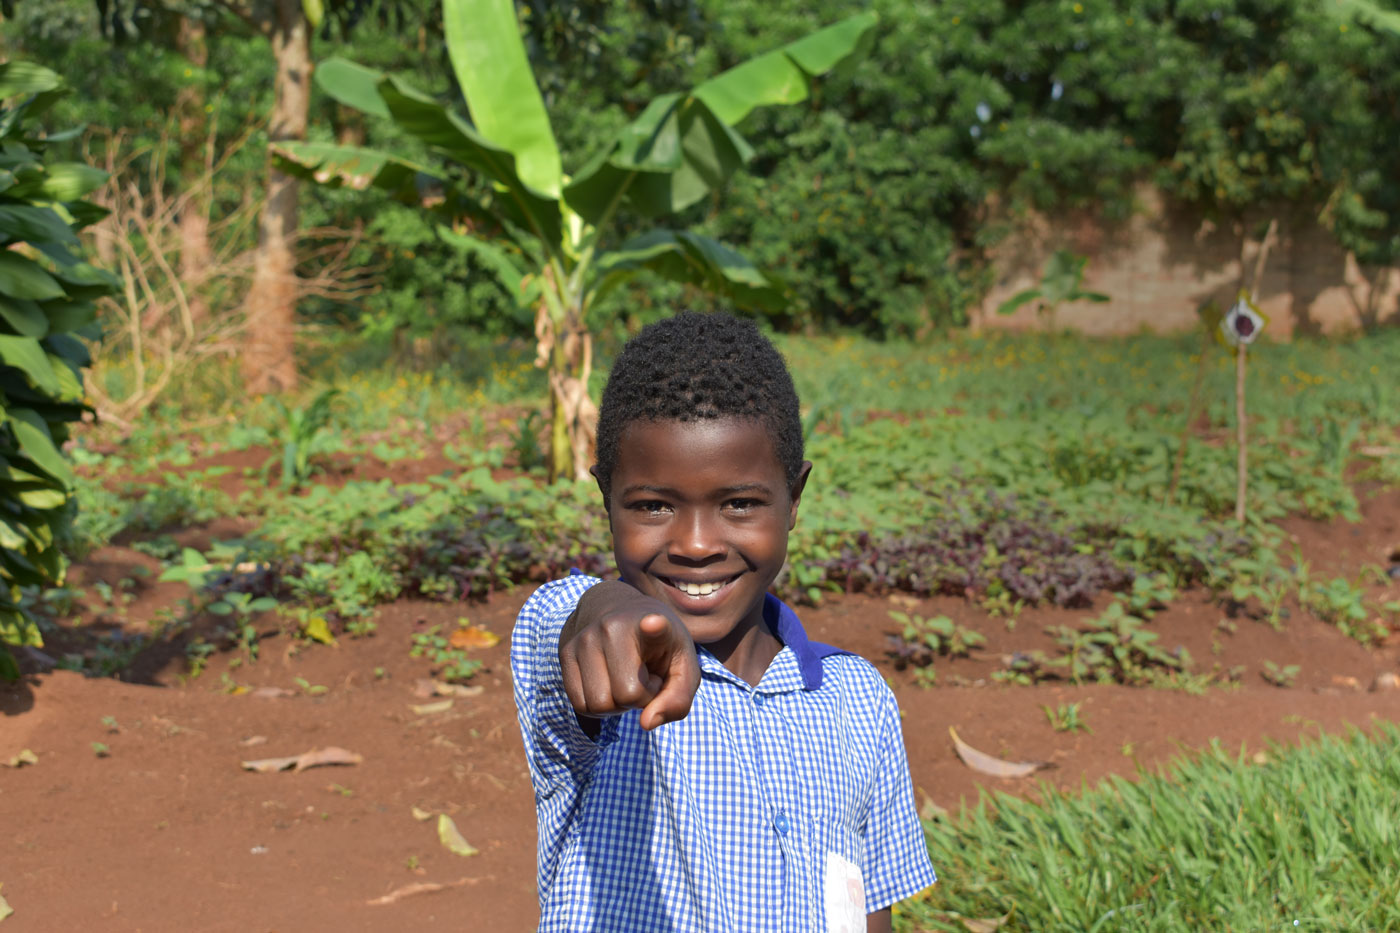 A young boy pointing directly at the camera with a big smile